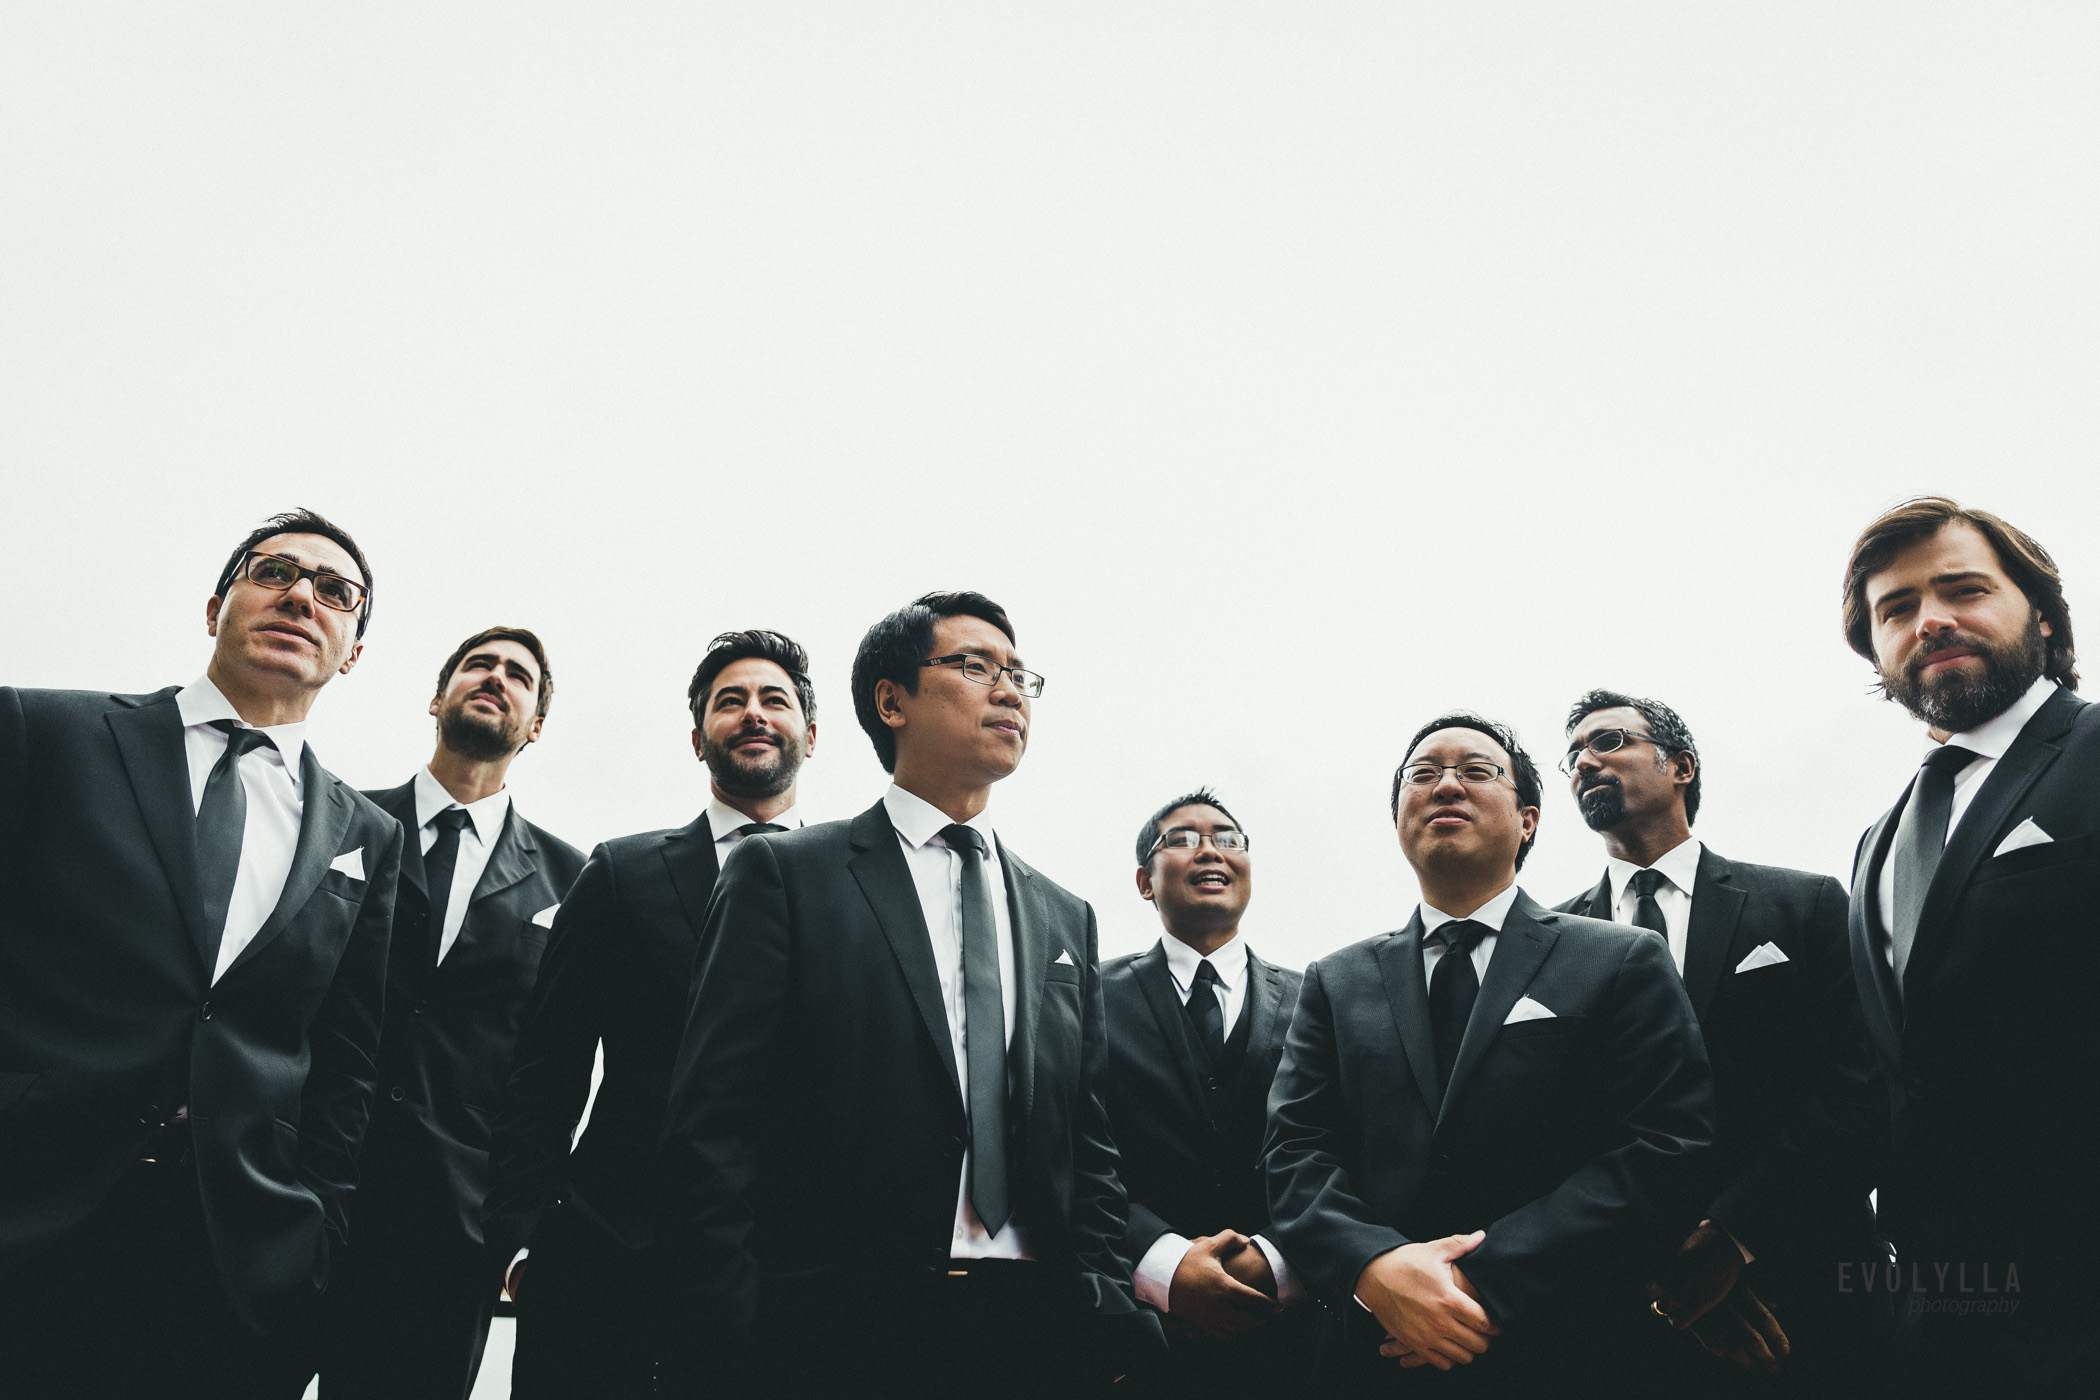 Toronto Wedding Photography Groom and Groomsmen Simplistic Black and White Suits